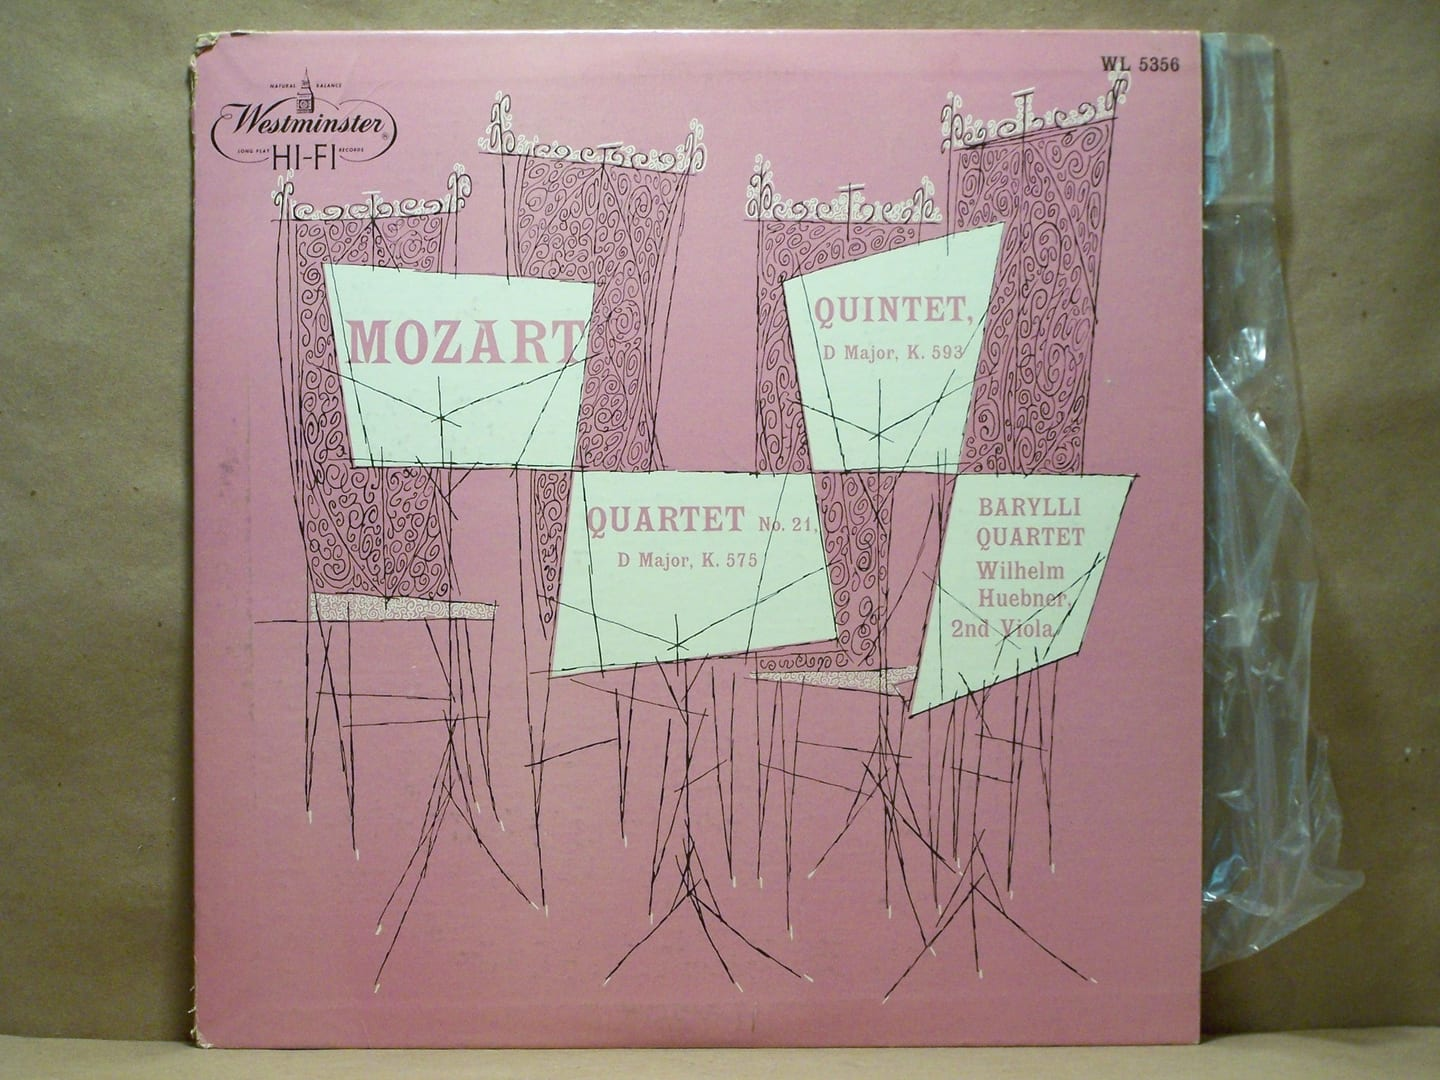 26th Annual Midwest Classical Record Show – 2013